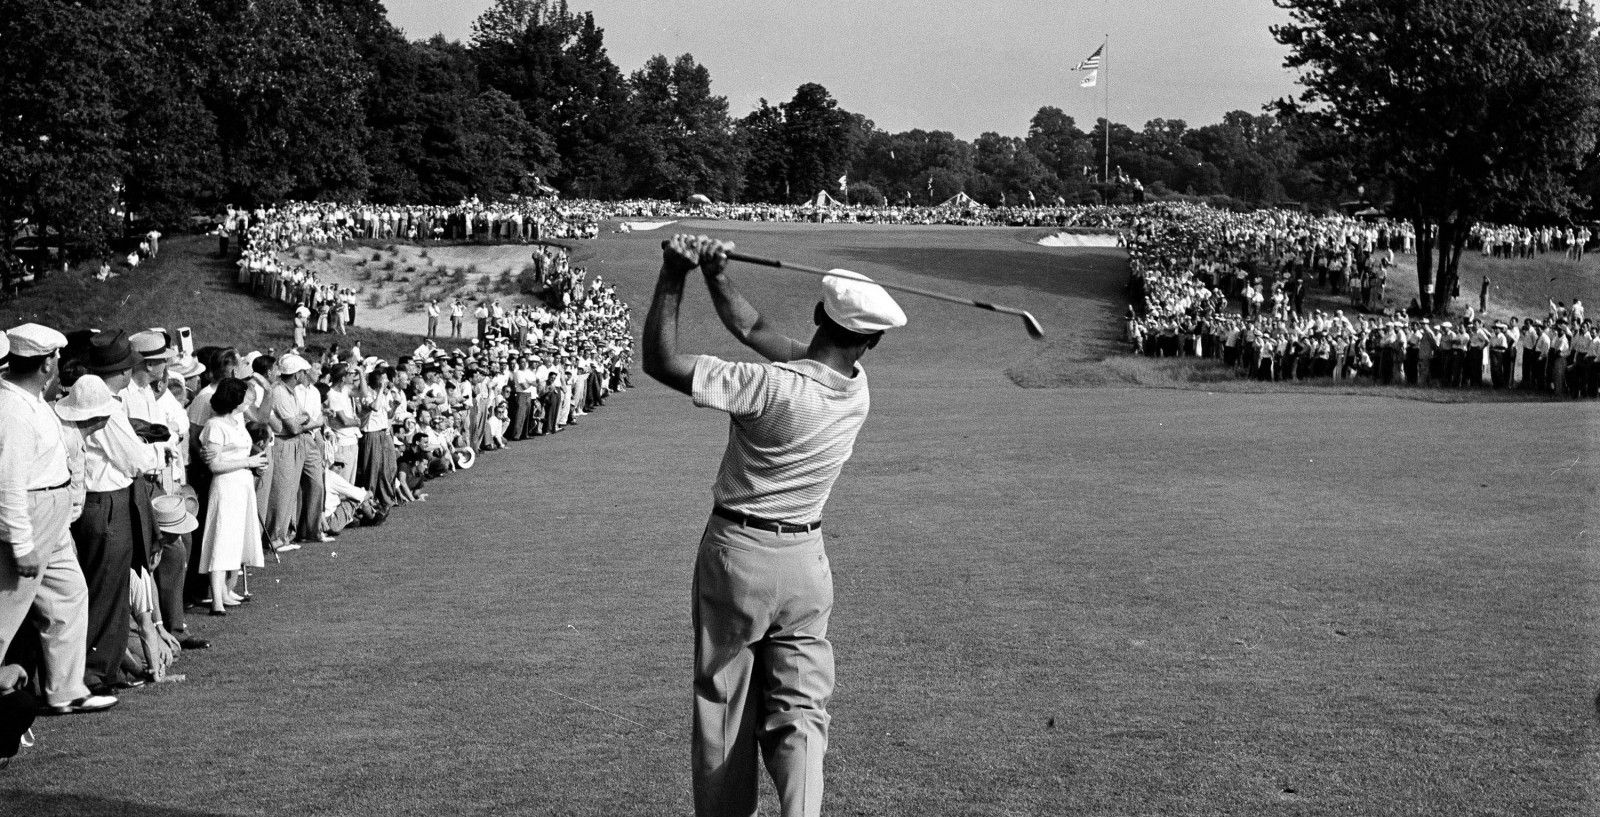 On this day, In 1950 Ben Hogan hits a 1 iron approach at Merion which turns out to be one of the most famous golf photographs of all time. http://www.golfhistorytoday.com/golf-events/2016/6/10/on-this-day-in-1950-ben-hogan-hits-a-1-iron-approach-at-merion-which-turns-out-to-be-one-of-the-most-famous-golf-photographs-of-all-time